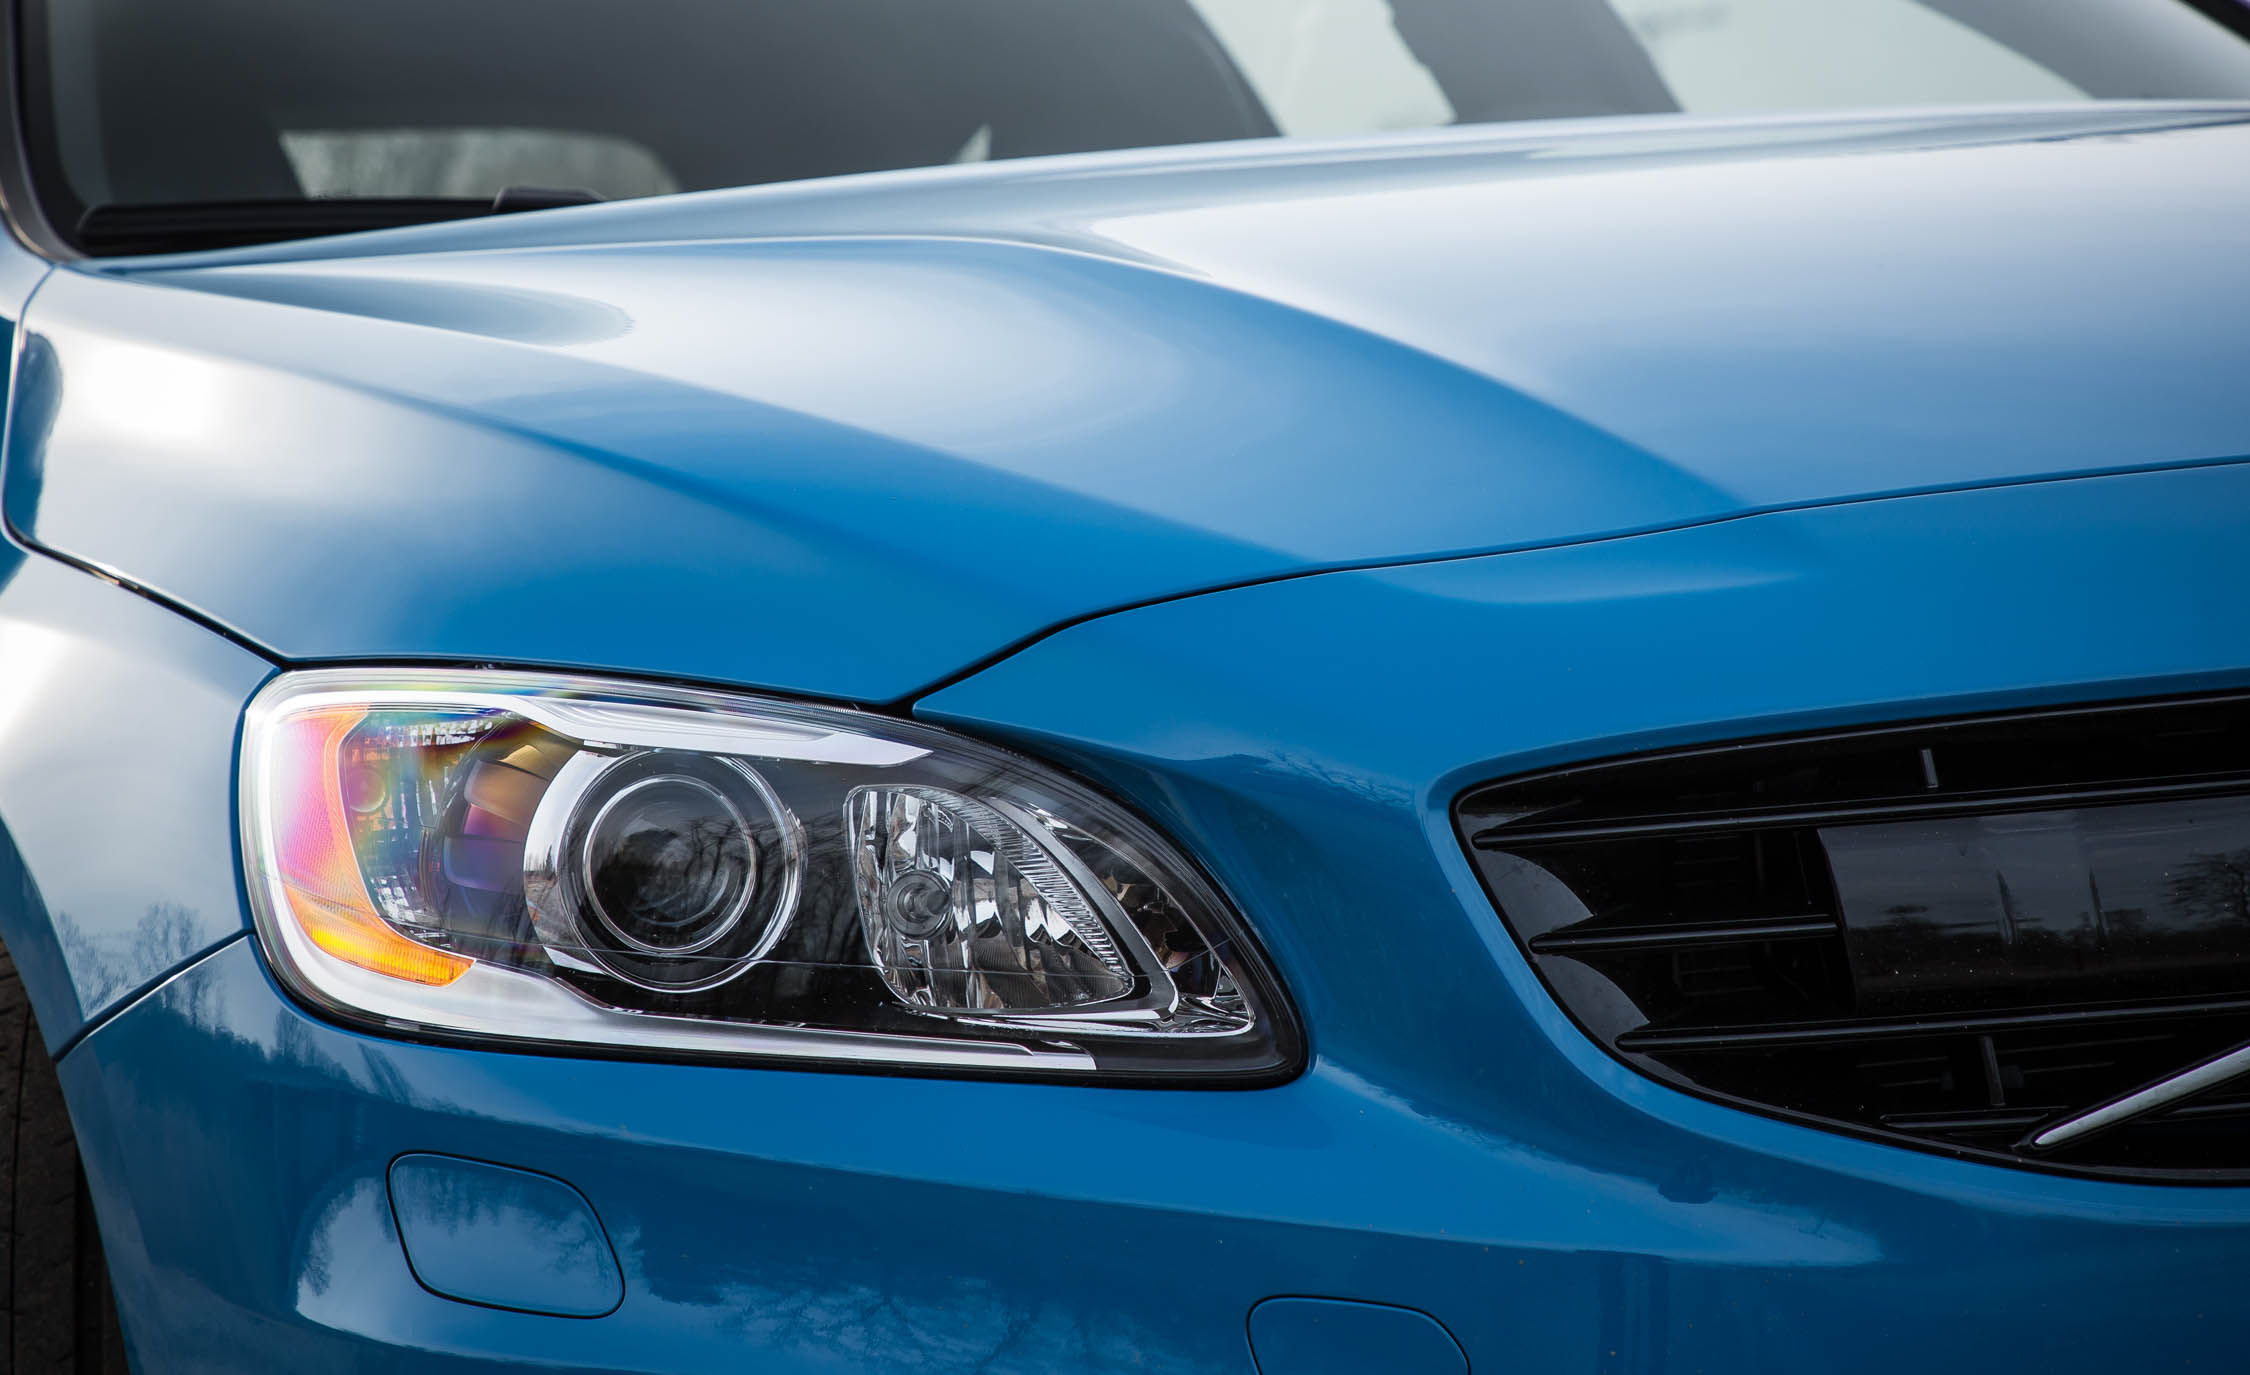 2017 Volvo V60 Polestar Exterior View Headlight (View 19 of 53)